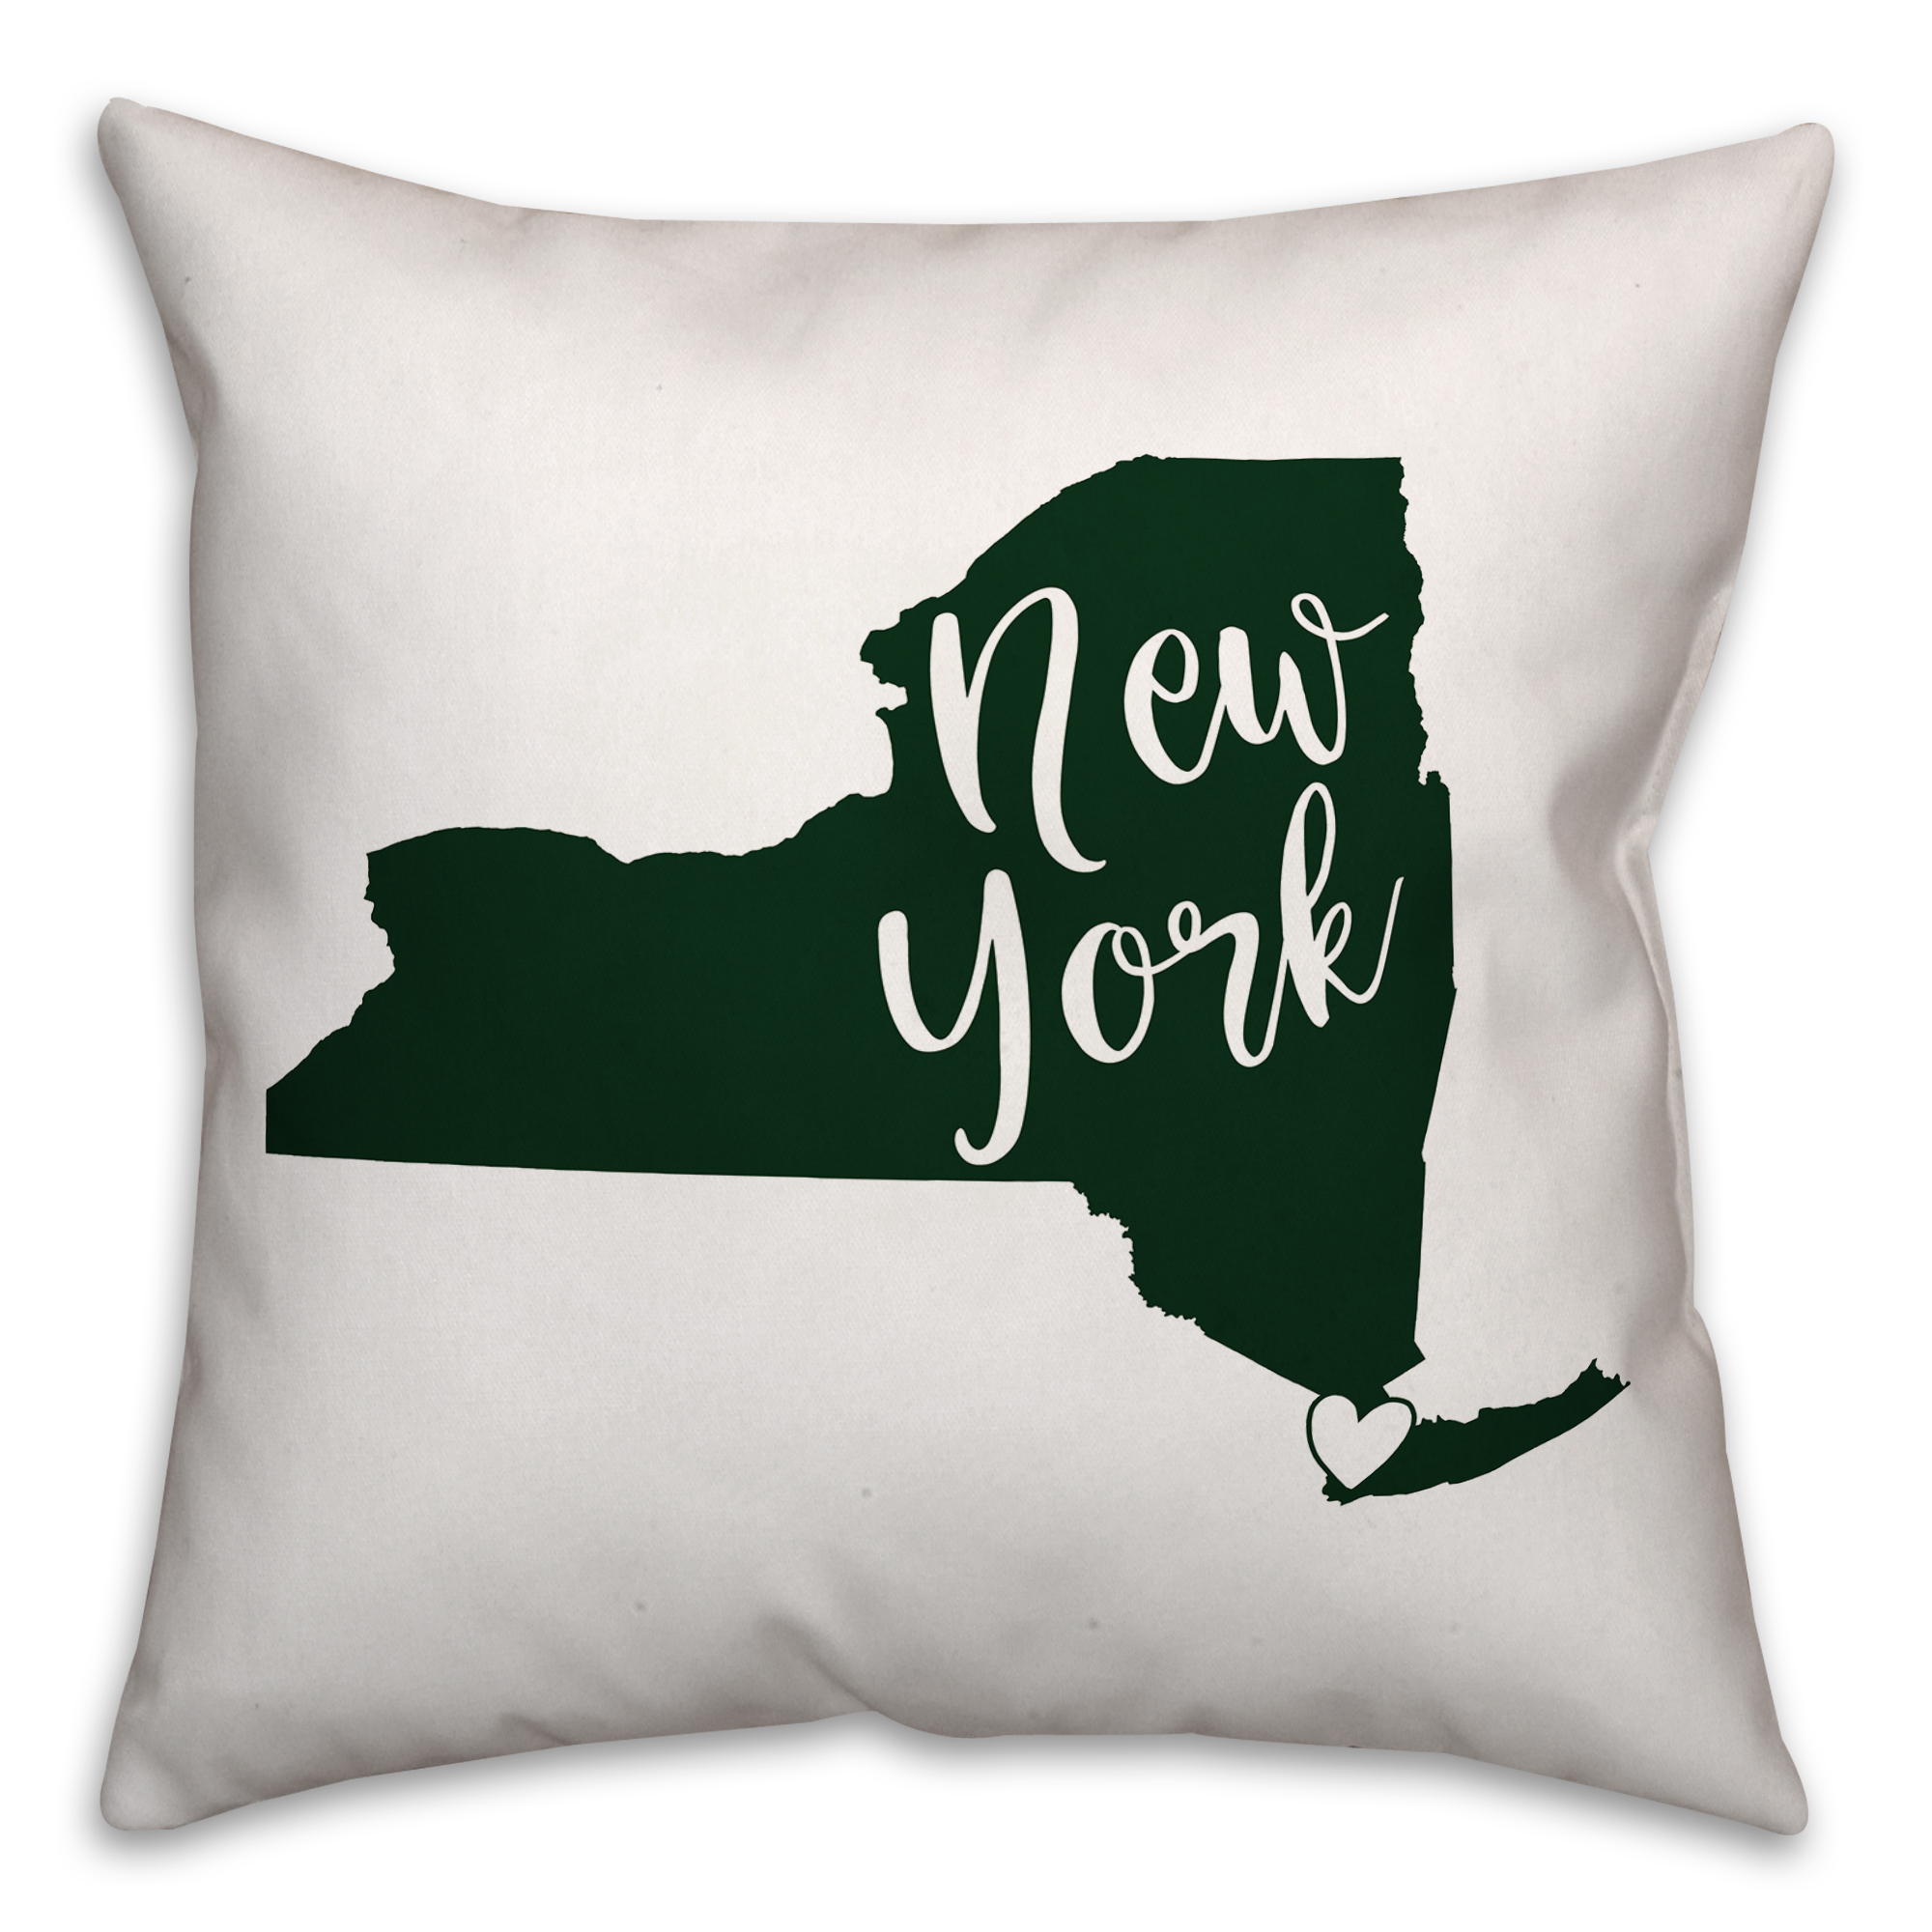 Green and White New York Pride 16x16 Spun Poly Pillow